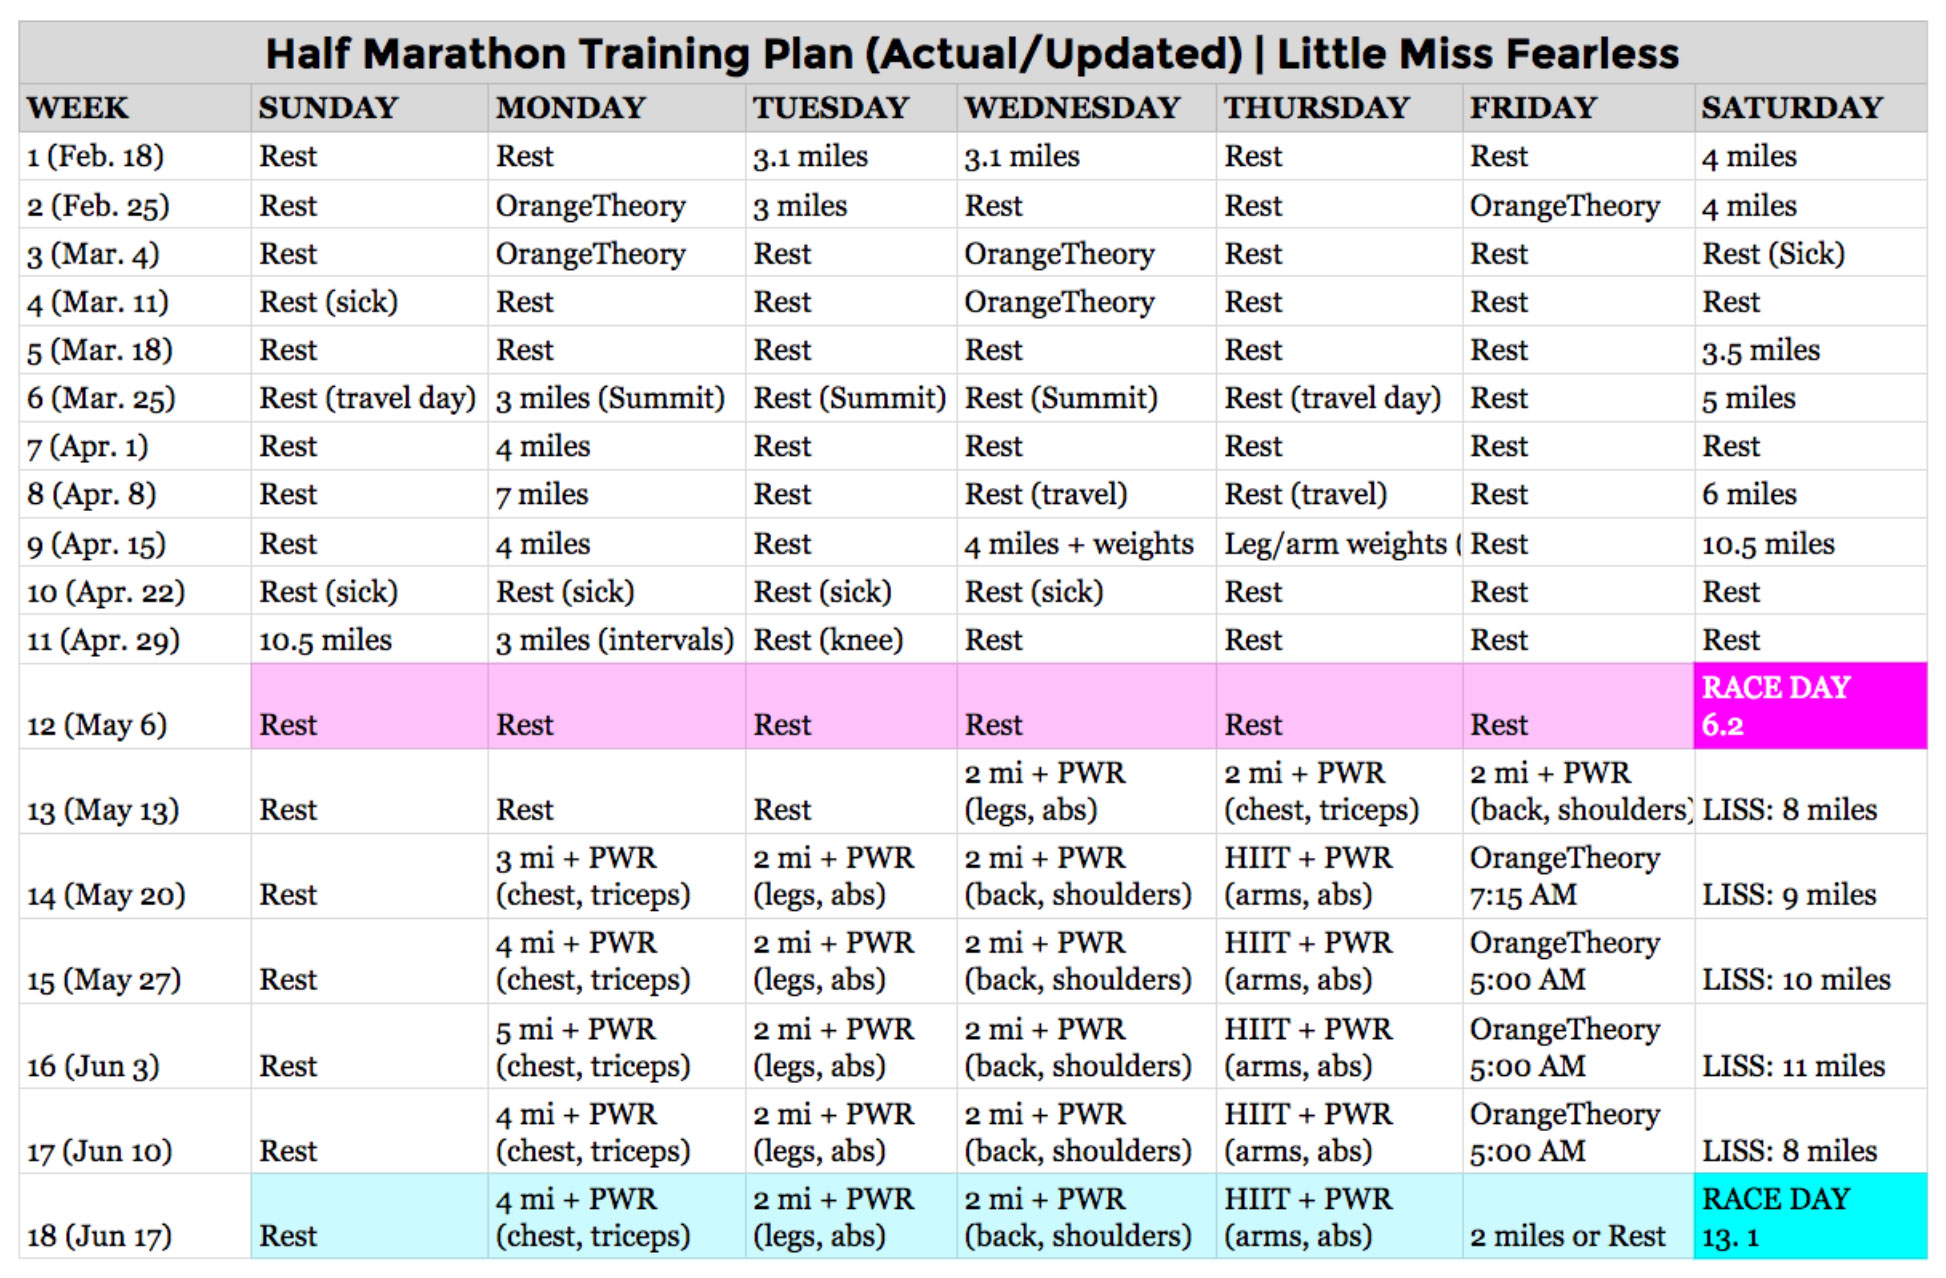 Half Marathon Training Update + What's Next | Little Miss Fearless